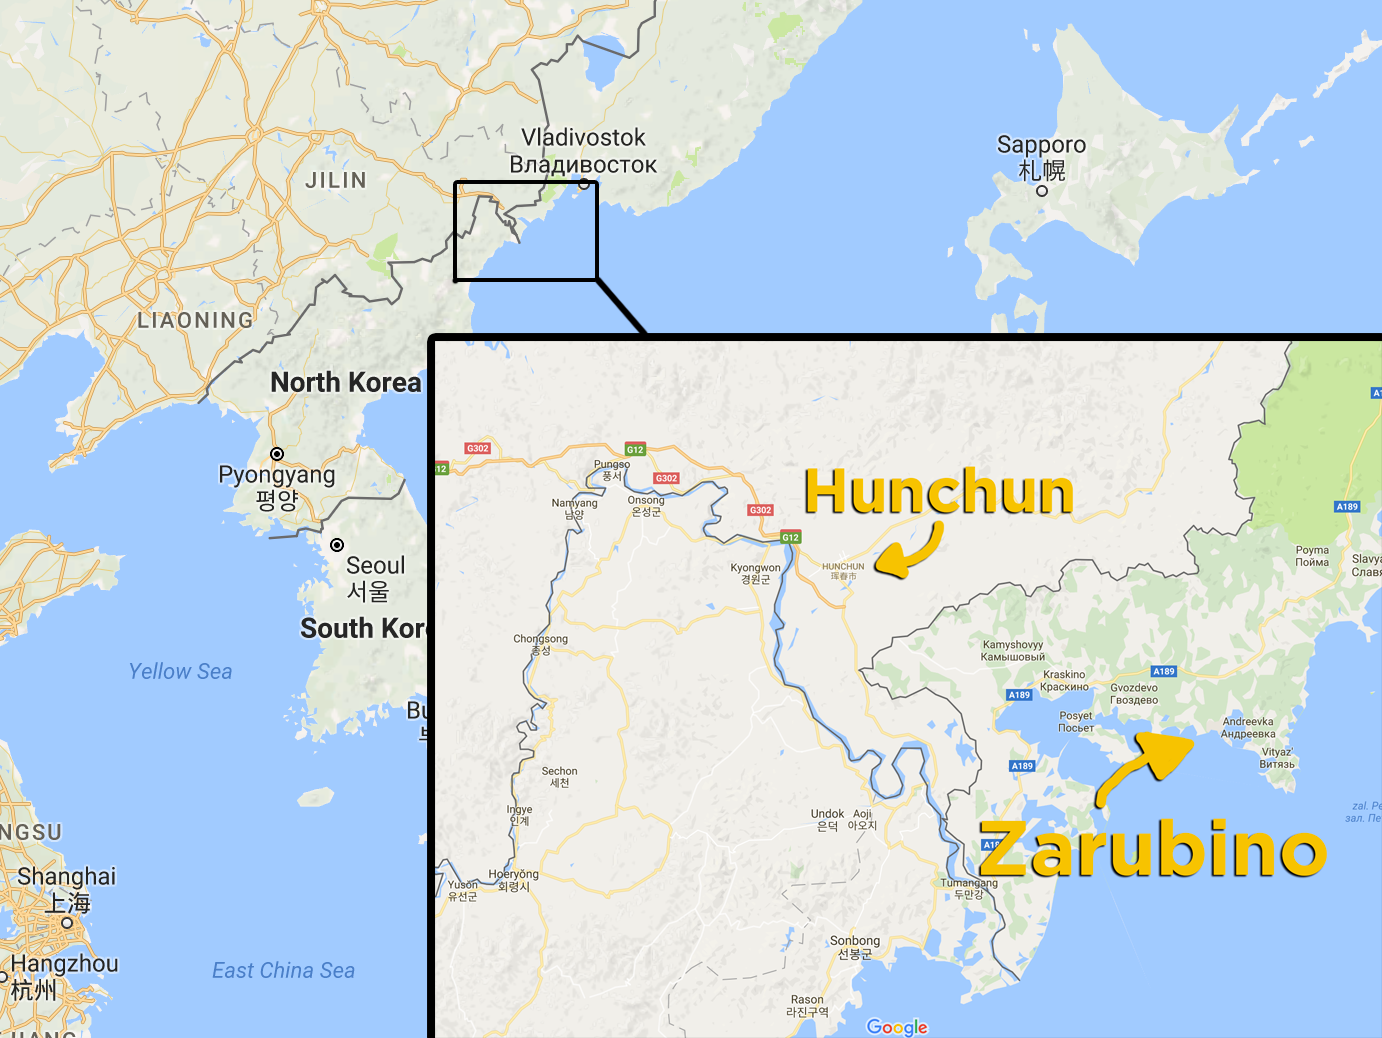 Here's where Hunchun and Zarubino are.